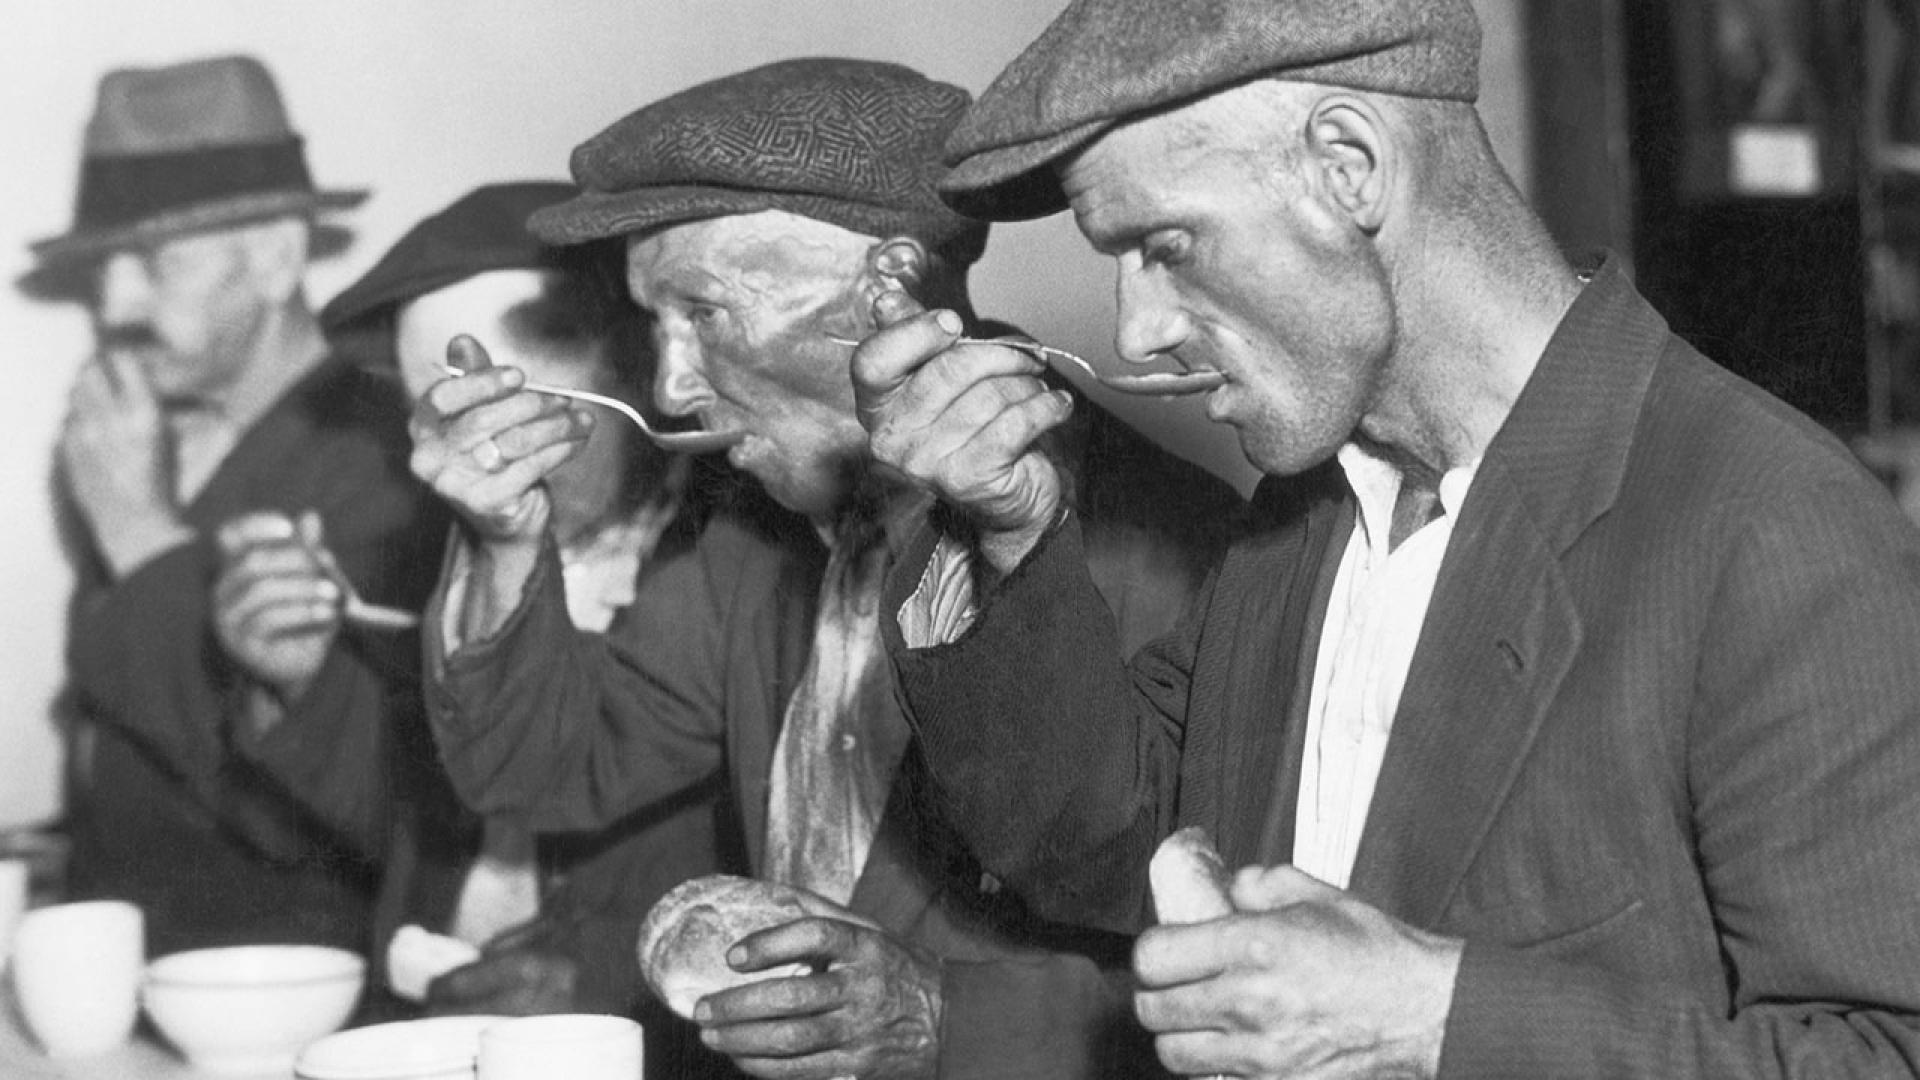 The Great Depression in the U.S.: Men eating bread and soup in a breadline.